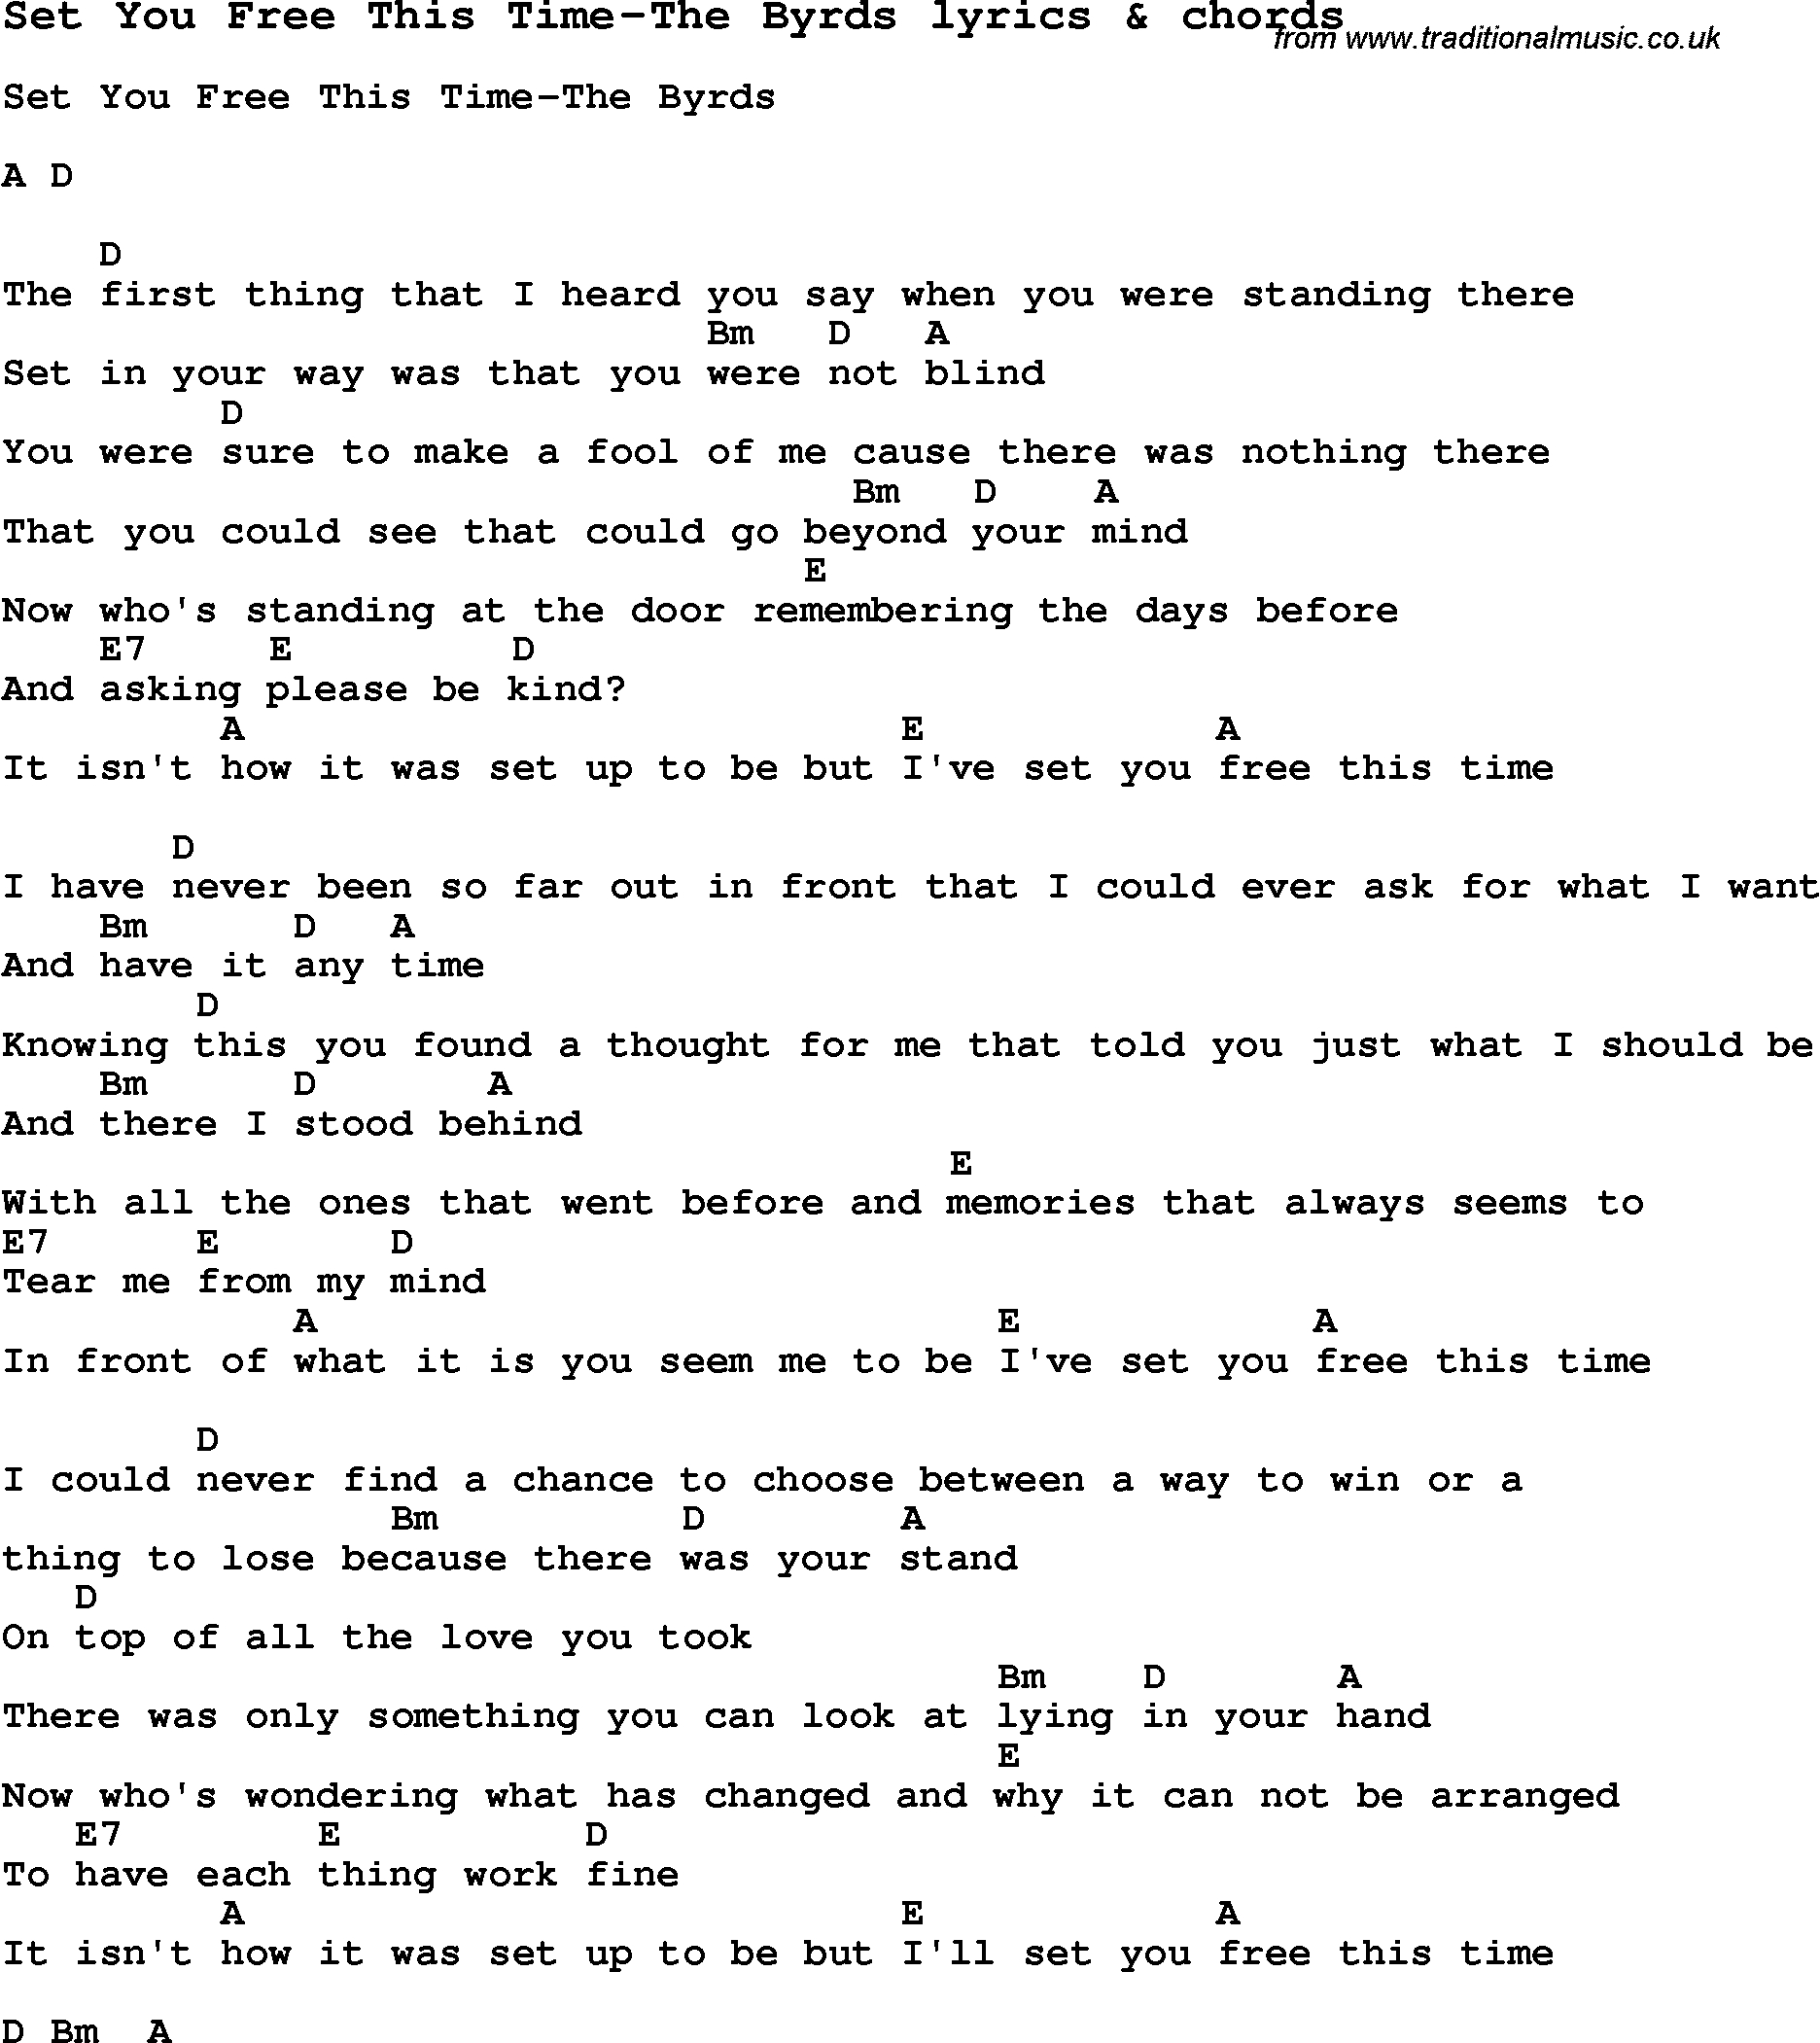 Love Song Lyrics For:set You Free This Time-The Byrds With Chords. - Free Printable Song Lyrics